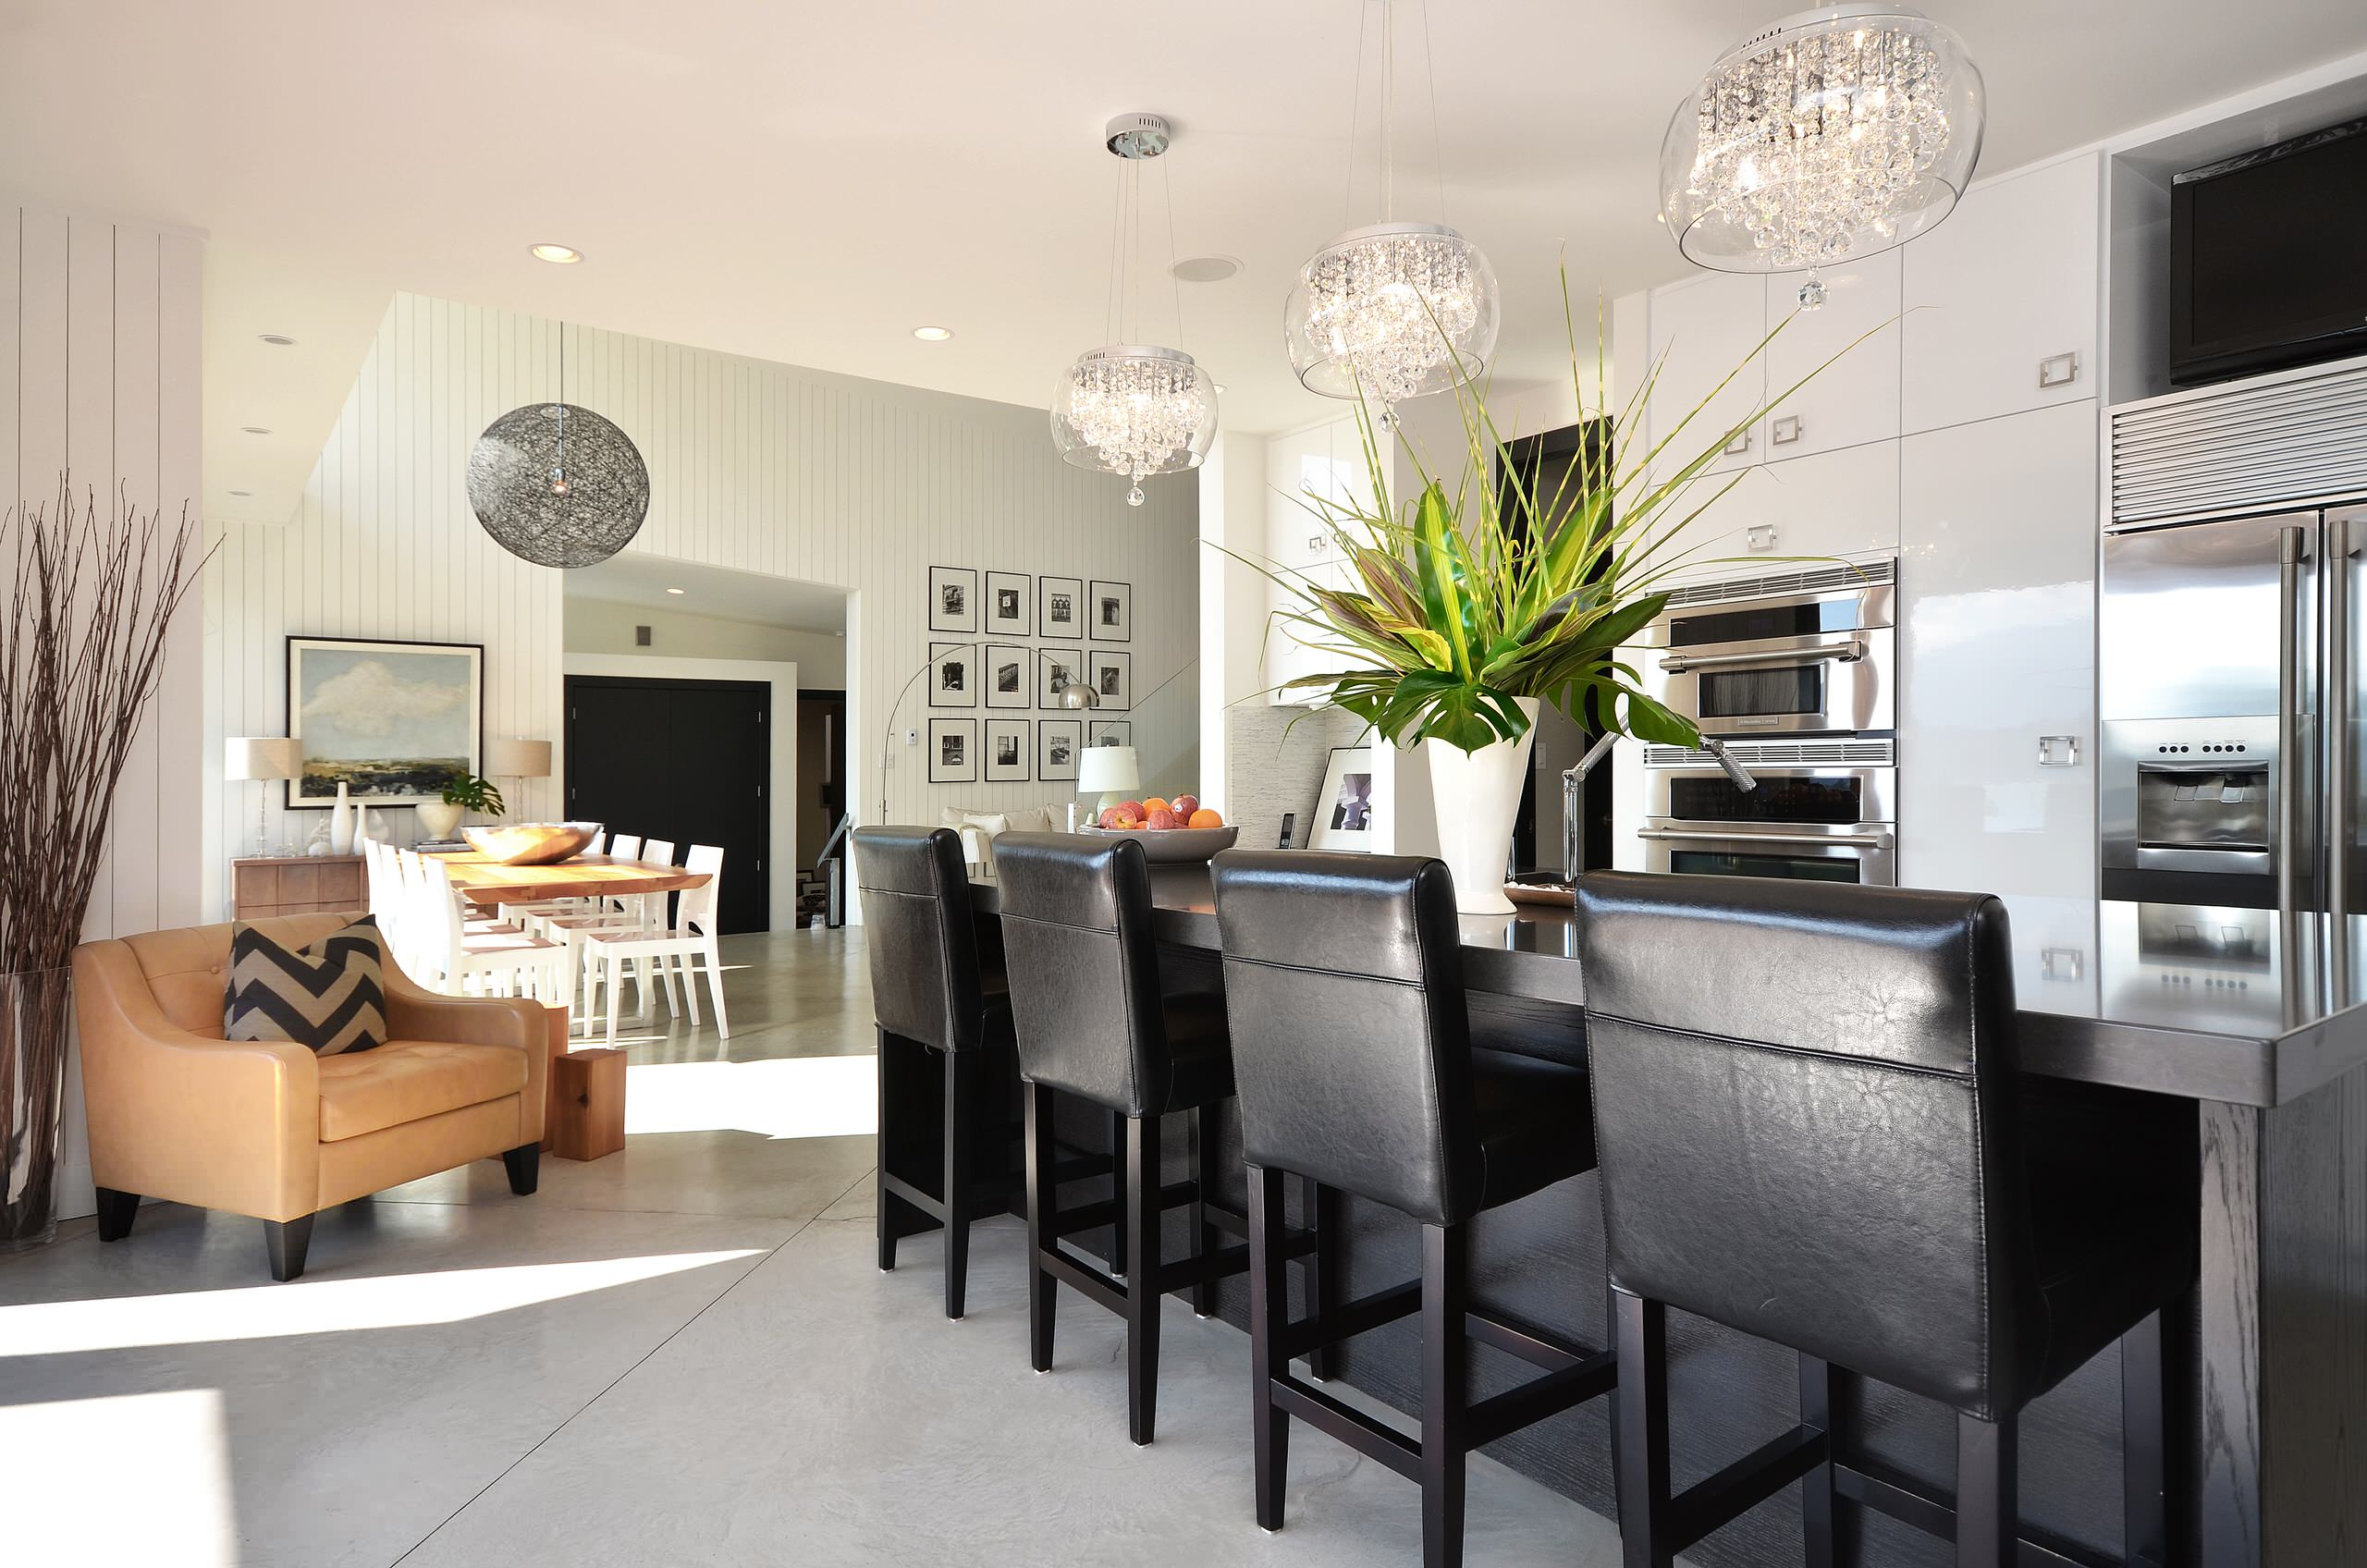 Choosing the Perfect Drum Chandelier for Dining Room: Breakfast Bar Plus Leather Bar Stools And Ceiling Lighting Also Drum Chandelier For Island Lighting In Modern Kitchen With Kitchen Hardware And Neutral Colors Also Stainless Steel Appliances